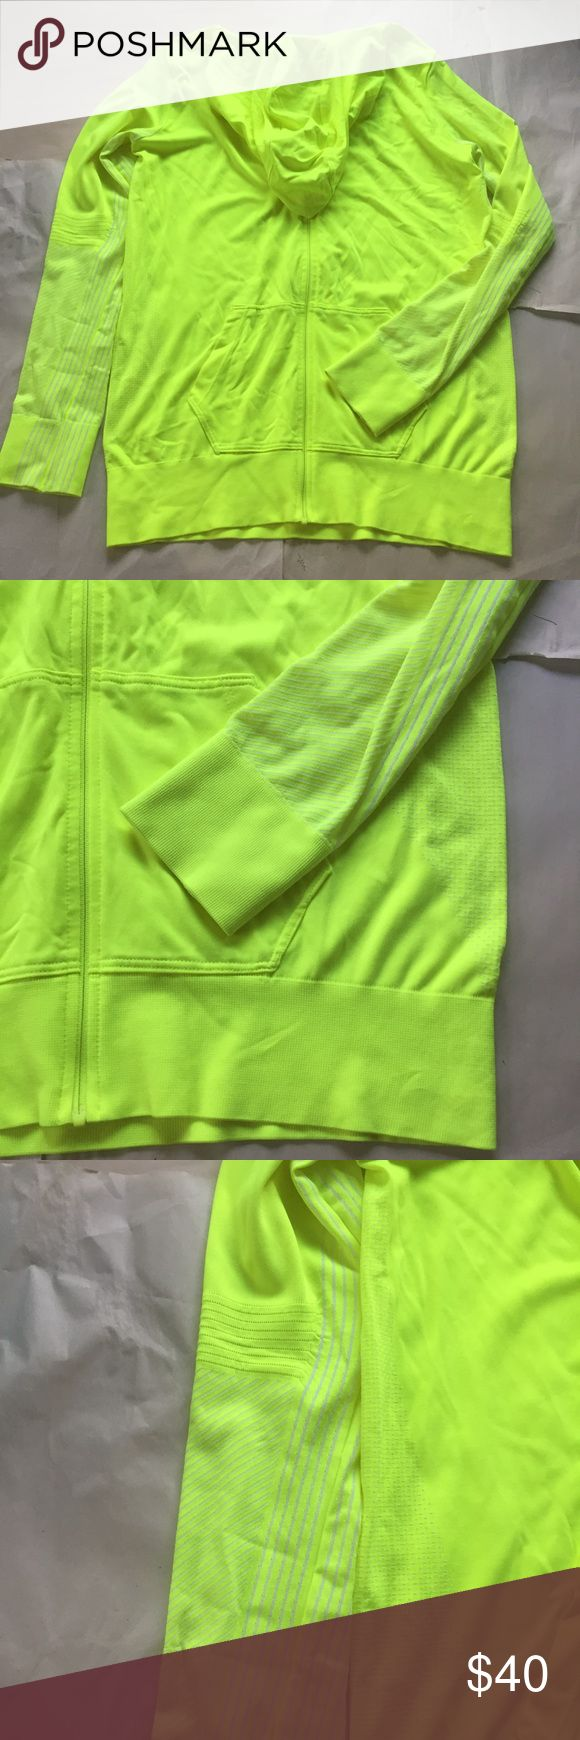 NWOT Nike Neon Yellow Knit Full Zip Hoodie Jacket Bright neon yellow Nike dri-fit jacket. Super light weight, perfect for running. Hood with drawstring with a front zipper that zips all the way up to the chin, blocking out the elements.   🌟same or next day shipping on all orders (except weekends)🌟make me an offer!🌟 Nike Jackets & Coats